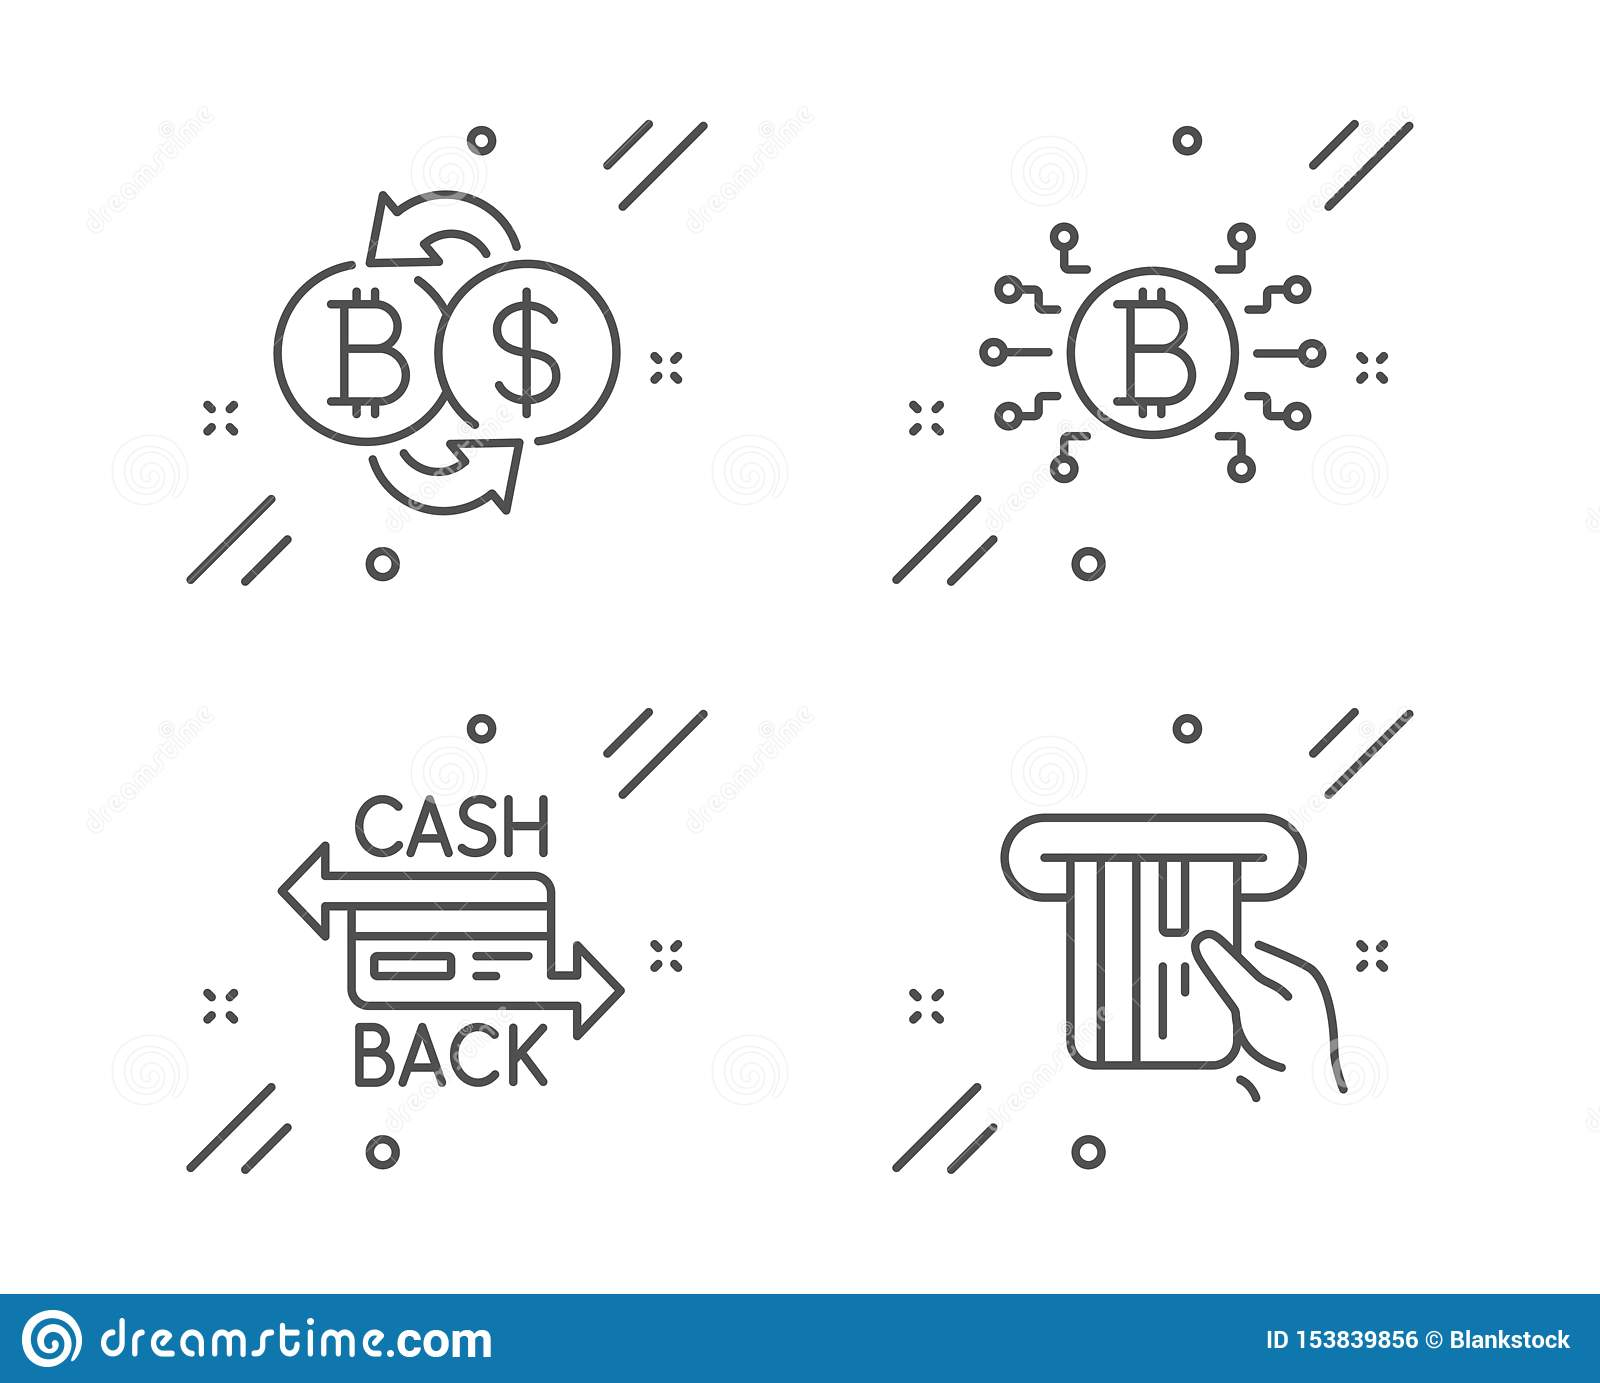 how to change cryptocurrency to real money